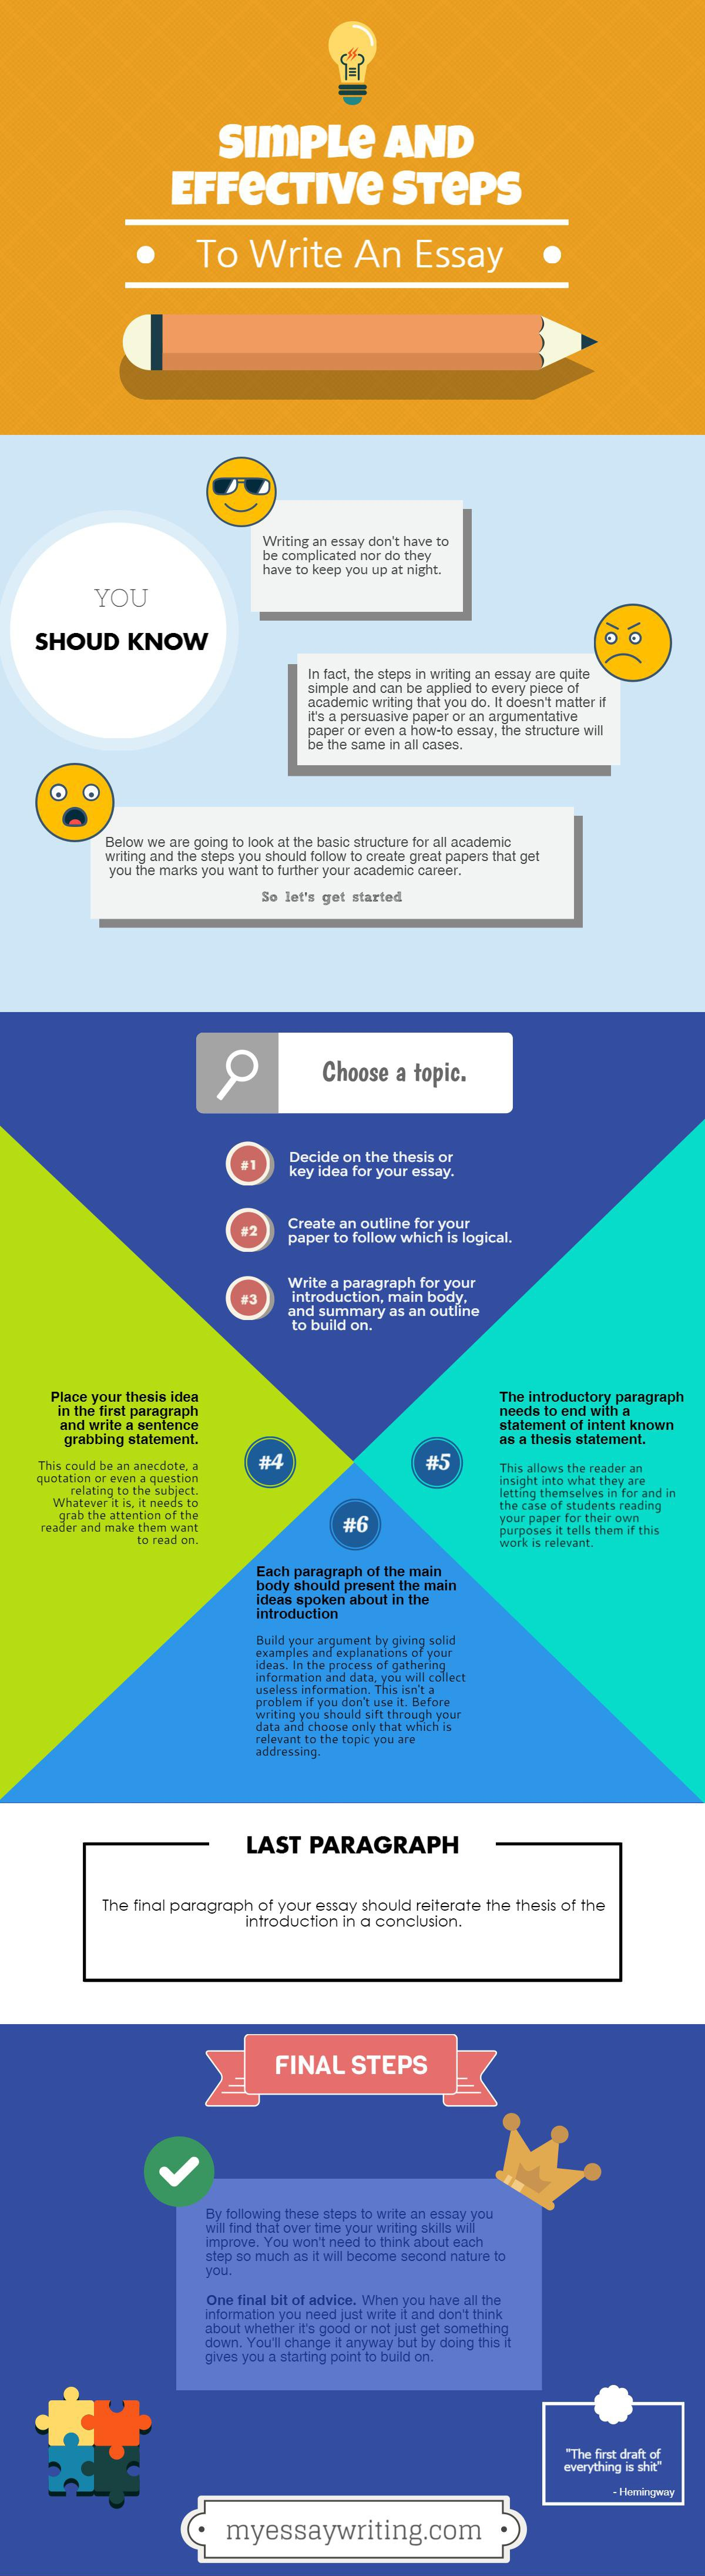 simple and effective steps to write an essay infographic e